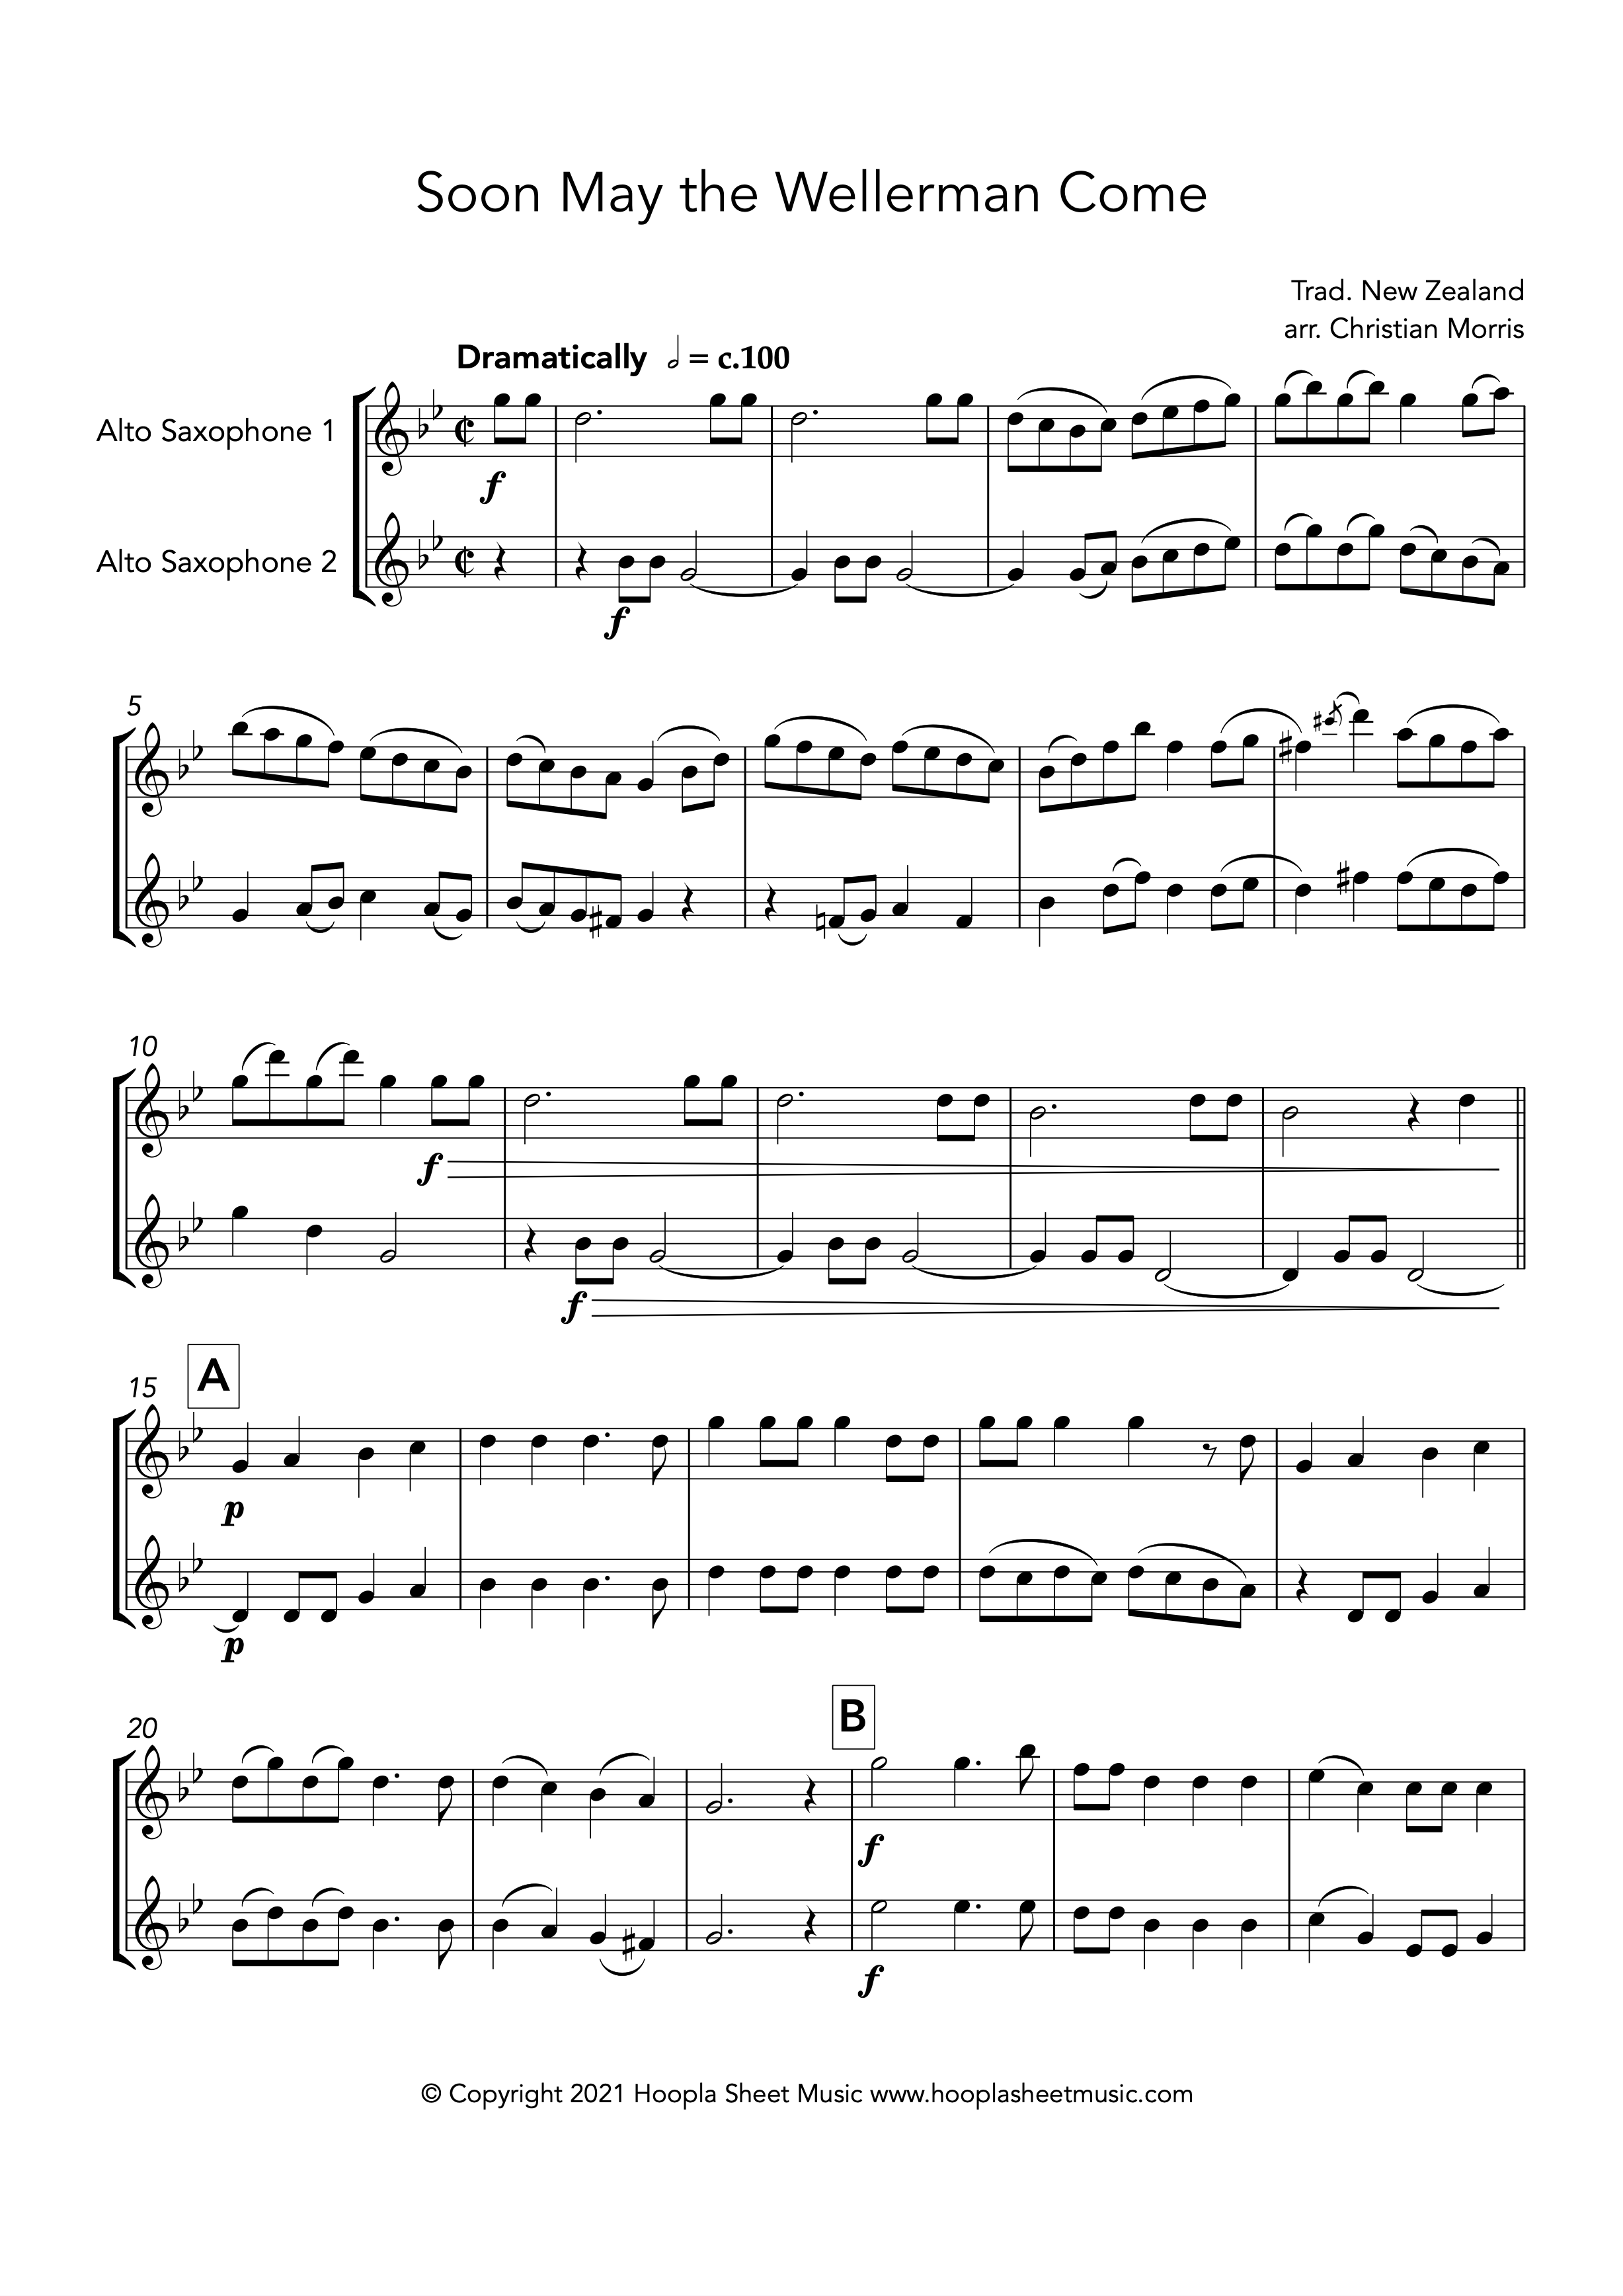 Soon May the Wellerman Come (Alto Saxophone Duet)